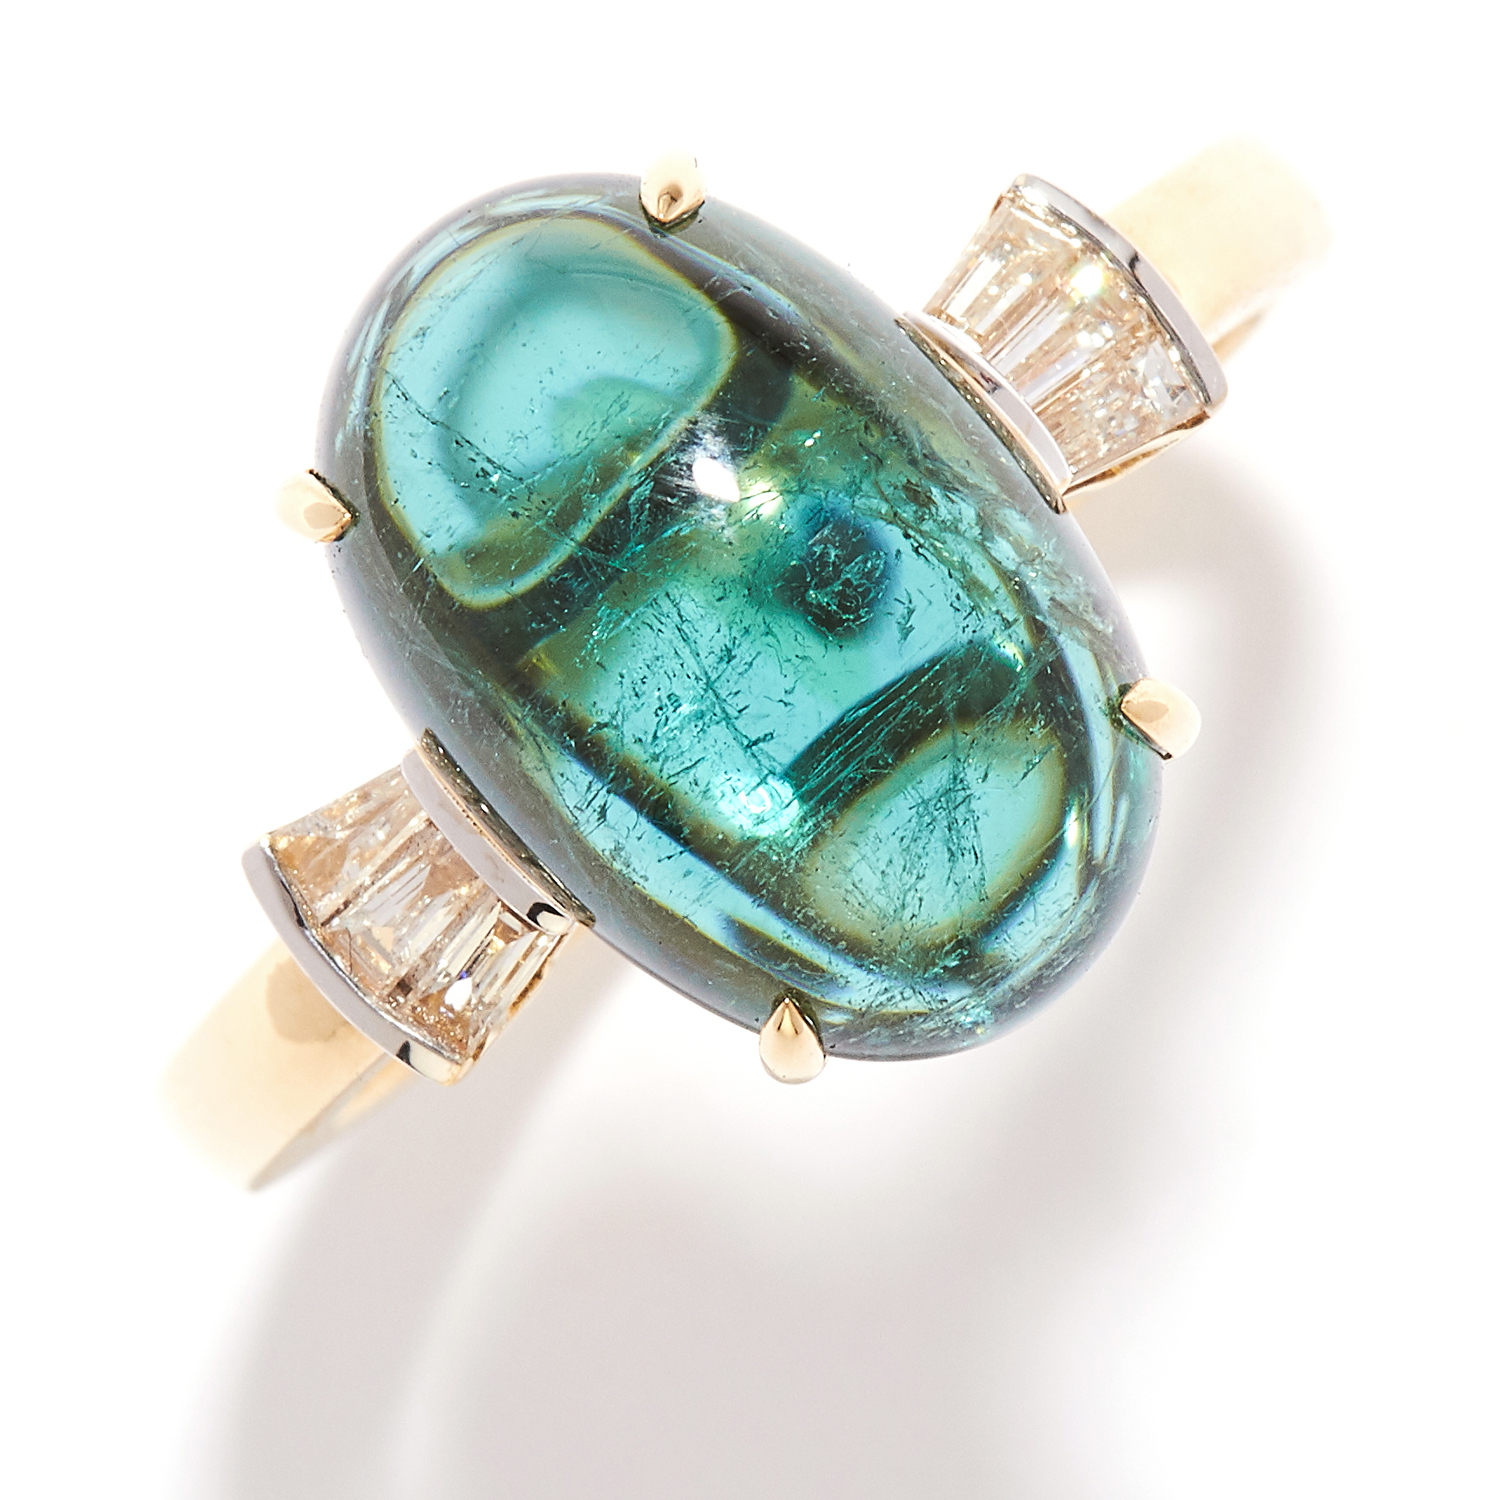 6.20 CARAT TOURMALINE AND DIAMOND DRESS RING in 18ct yellow gold, set with a 6.20 carat cabochon